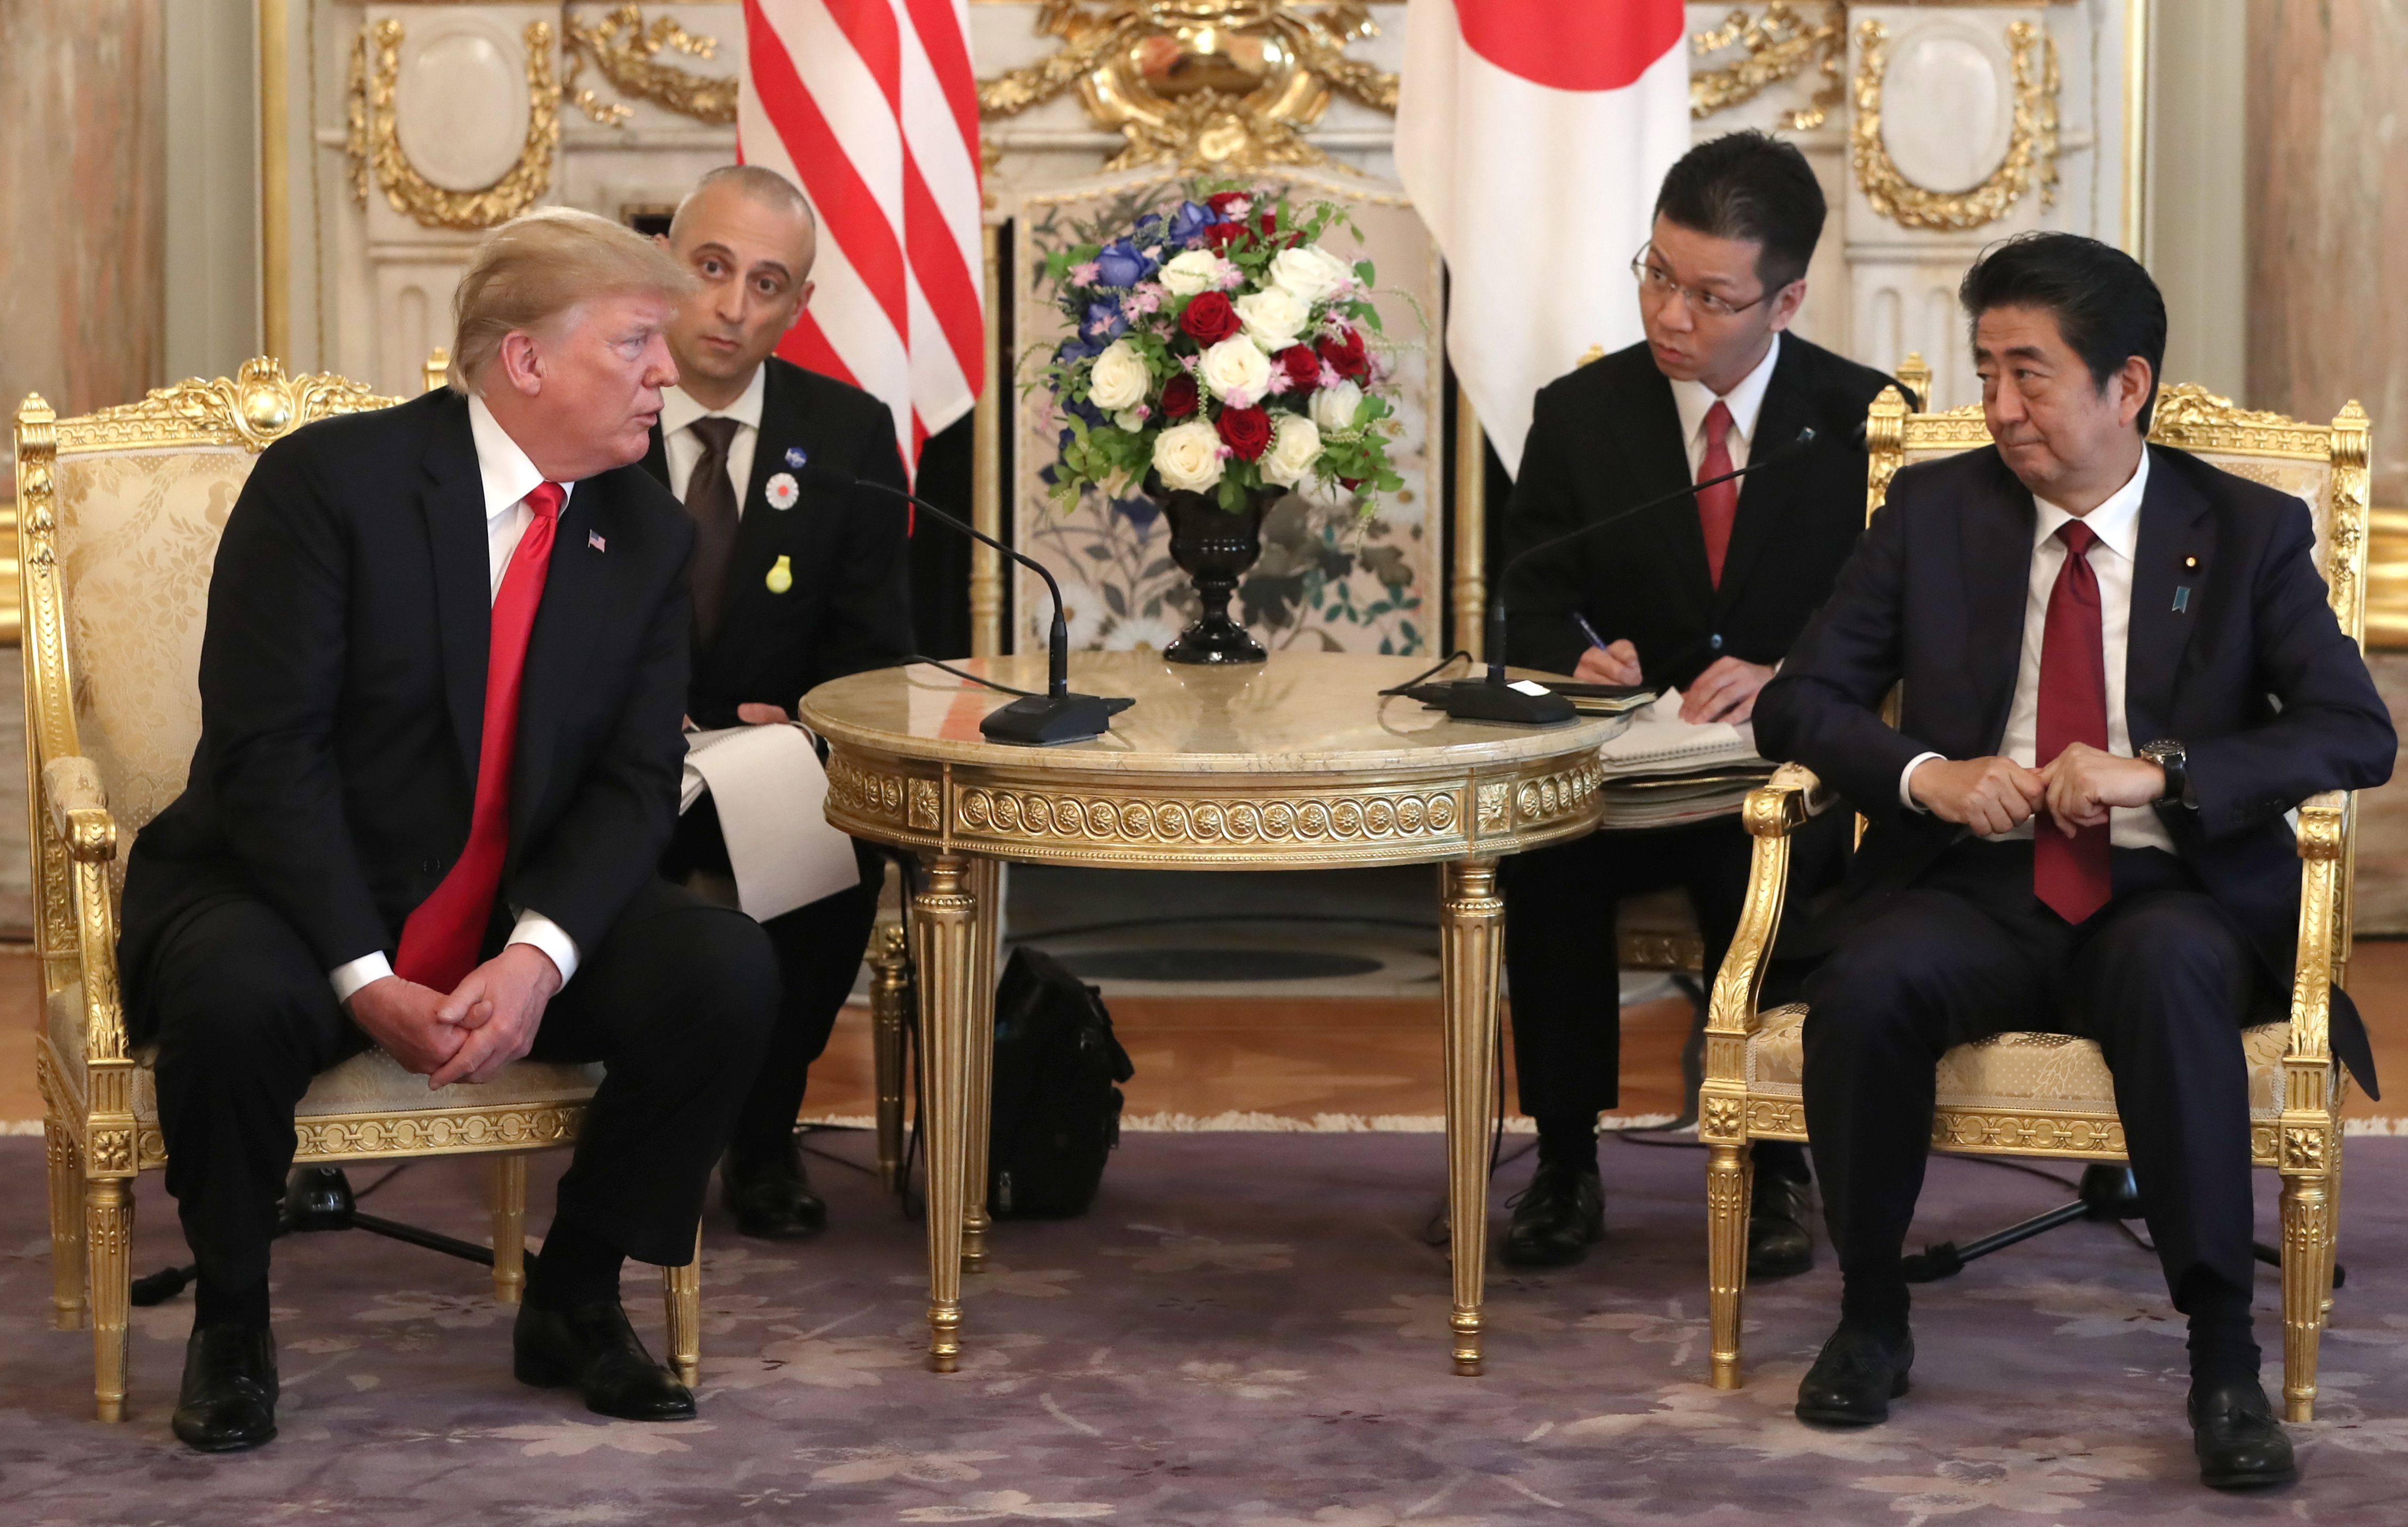 TOKYO, JAPAN - MAY 27: U.S. President Donald Trump, left, meets Japanese Prime Minister Shinzo Abe at Akasaka Palace, Japanese state guest house on May 27, 2019 in Tokyo, Japan. President Trump is on the third day of a four day state visit to Japan, the first official visit of the country's Reiwa era. Alongside a number of engagements, Mr Trump was guest of honour at a Sumo wrestling match on Sunday and is expected to meet families of North Korean abductees. (Photo by Eugene Hoshiko - Pool/Getty Images)